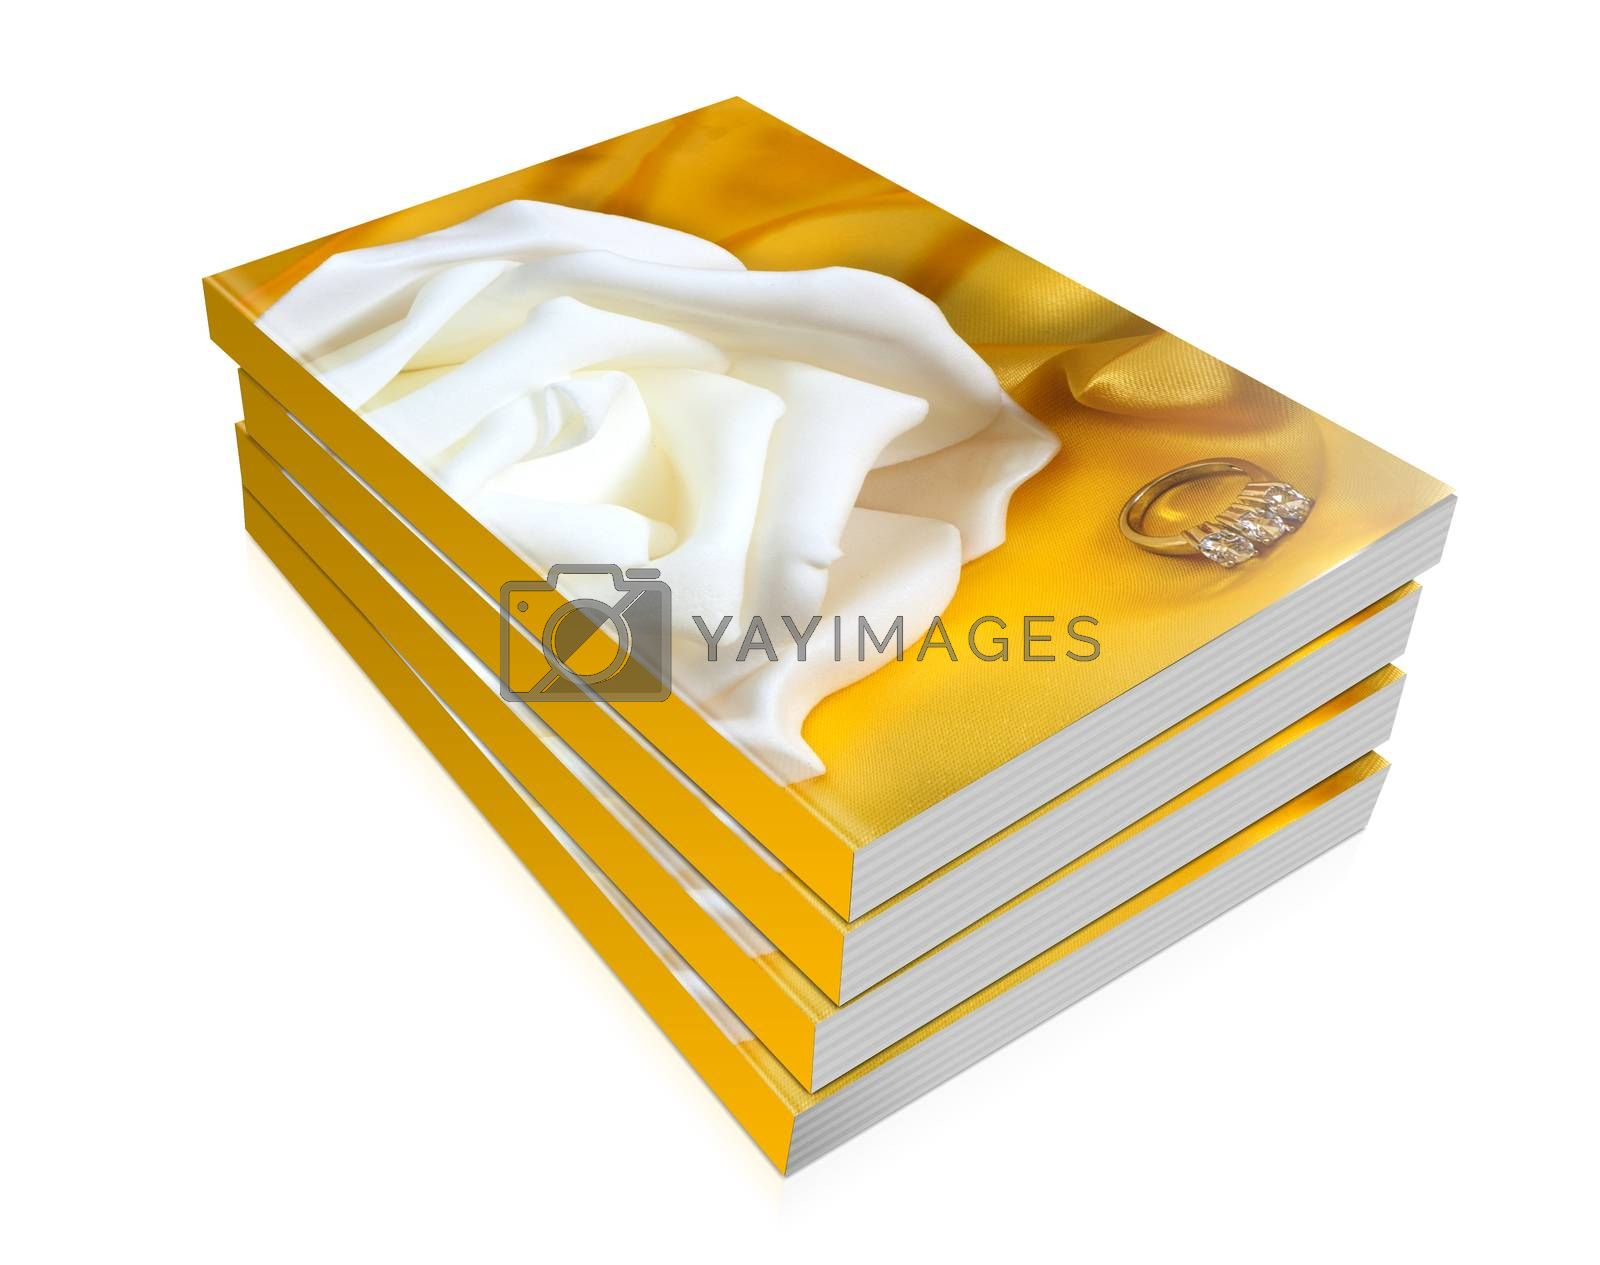 books of wedding rings on  a yellow fabric background